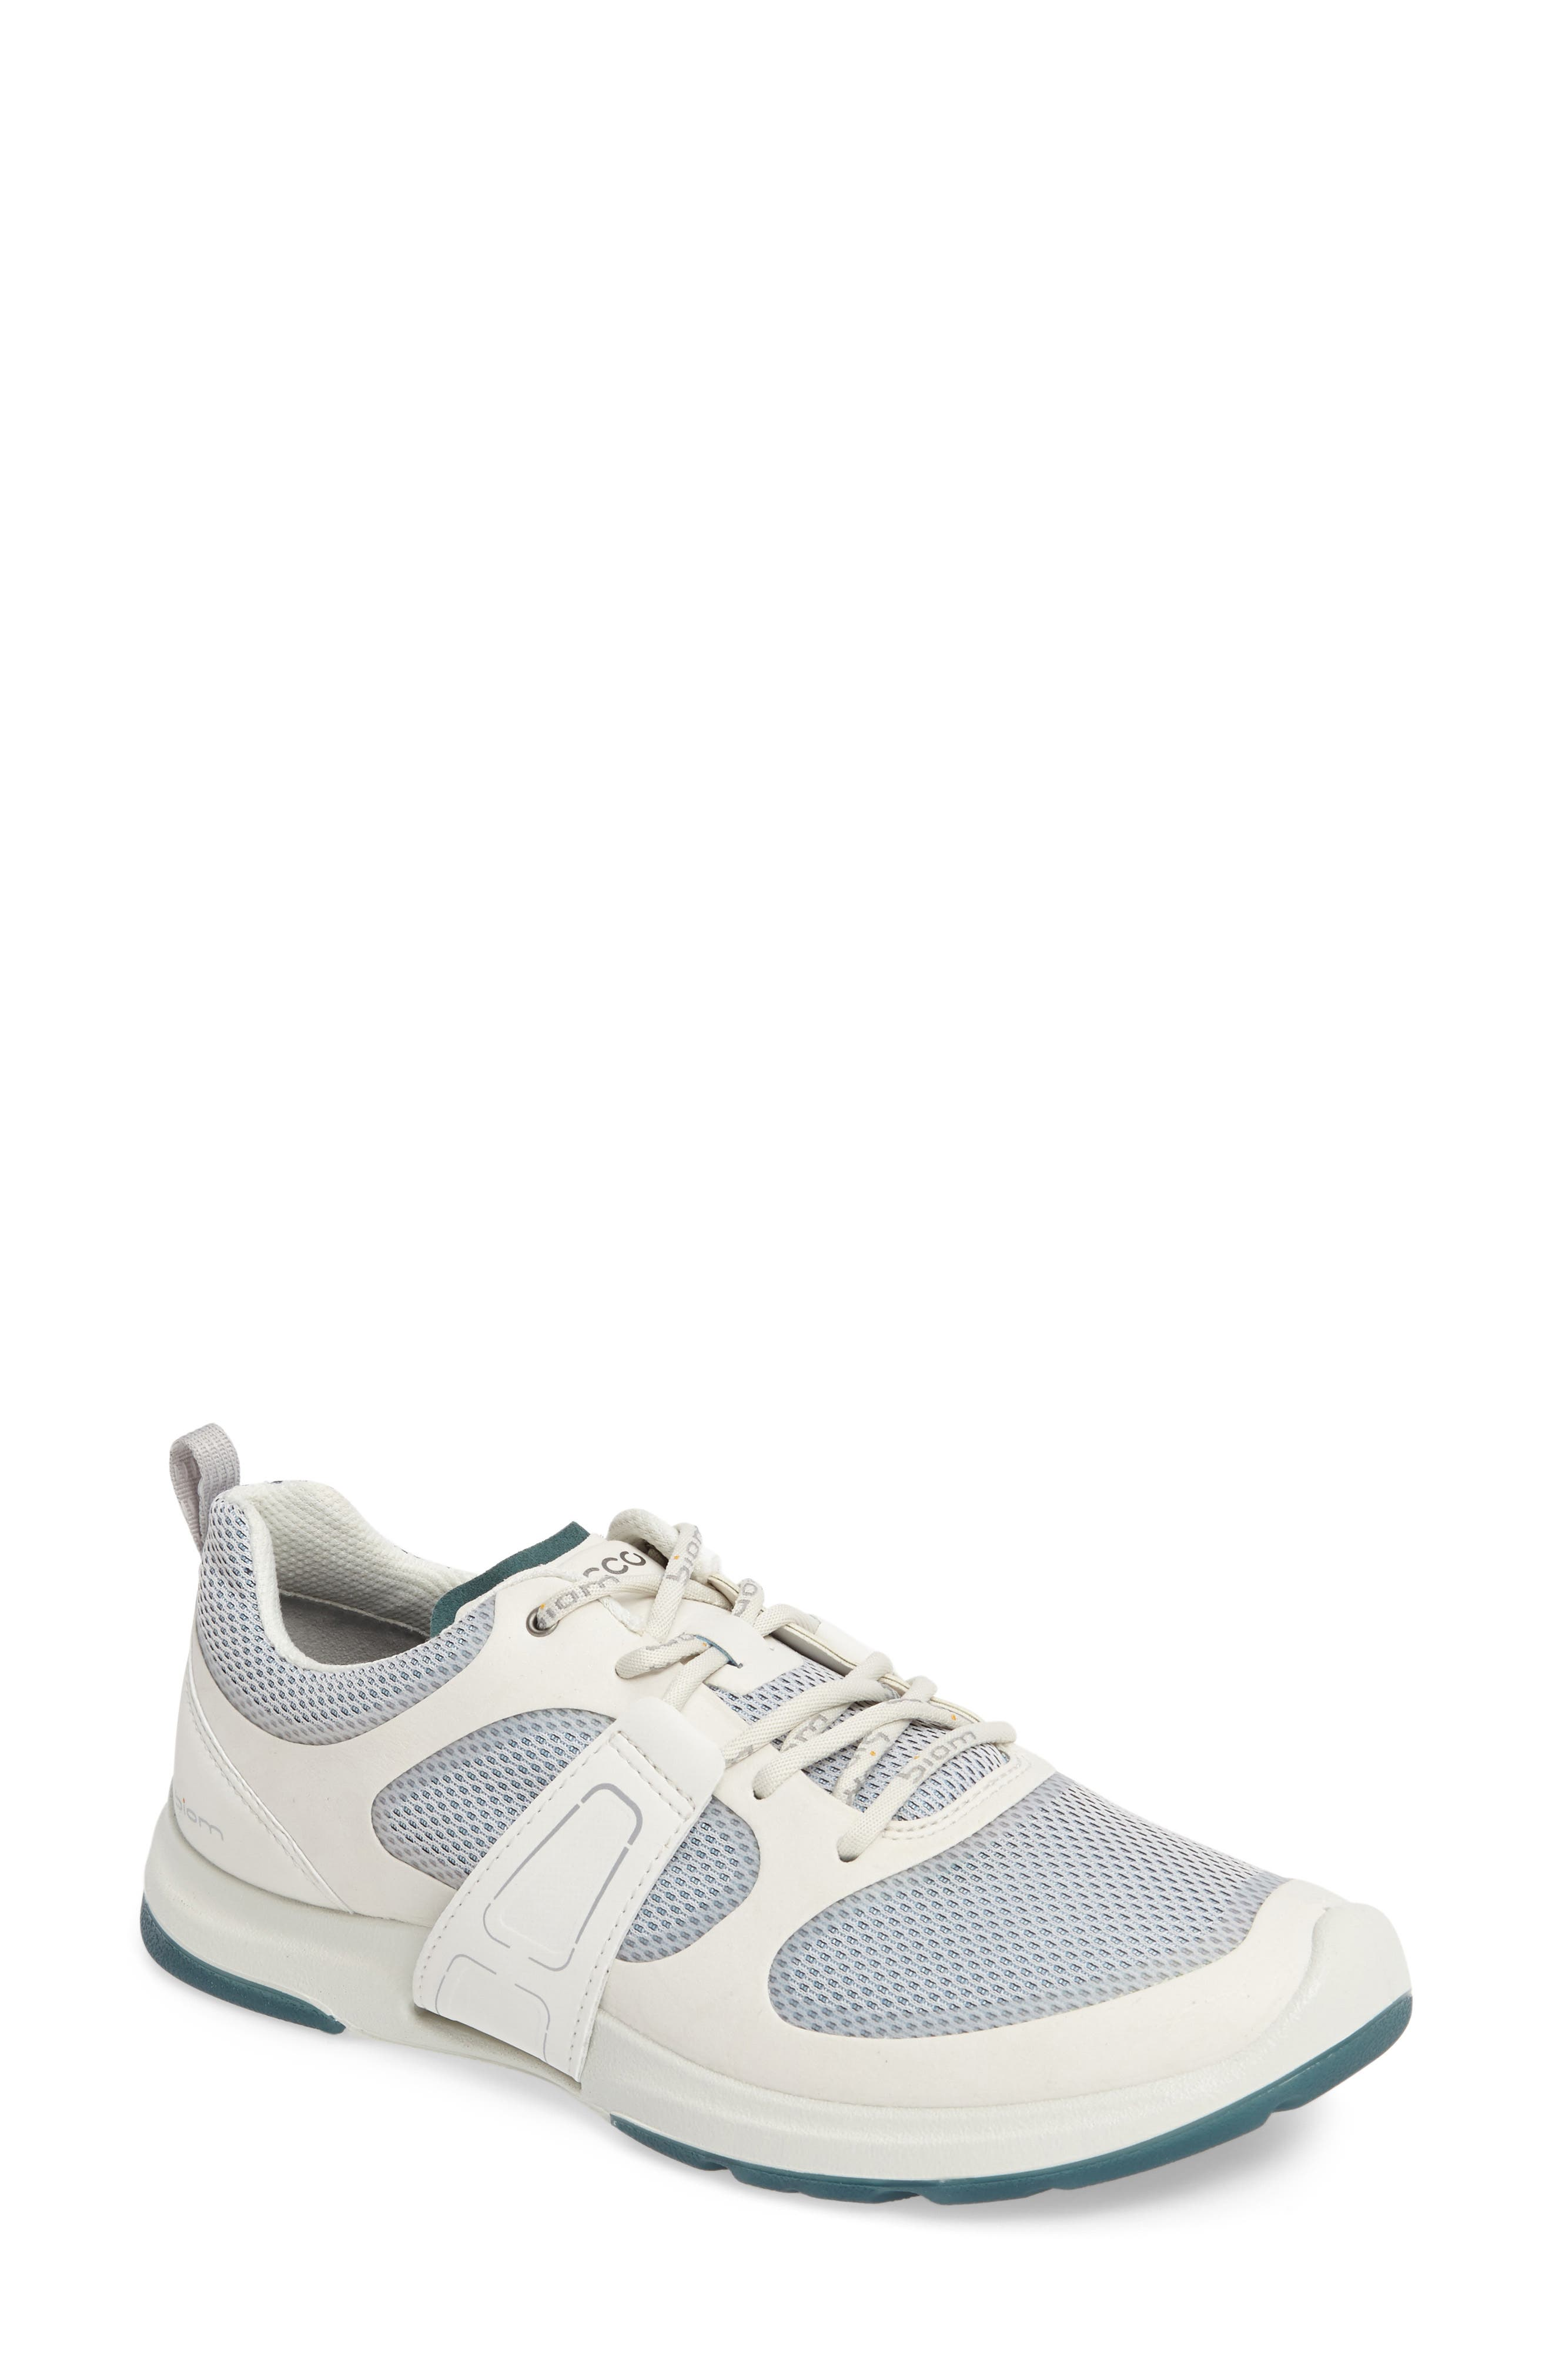 BIOM Amrap Sneaker,                             Main thumbnail 1, color,                             SHADOW WHITE LEATHER